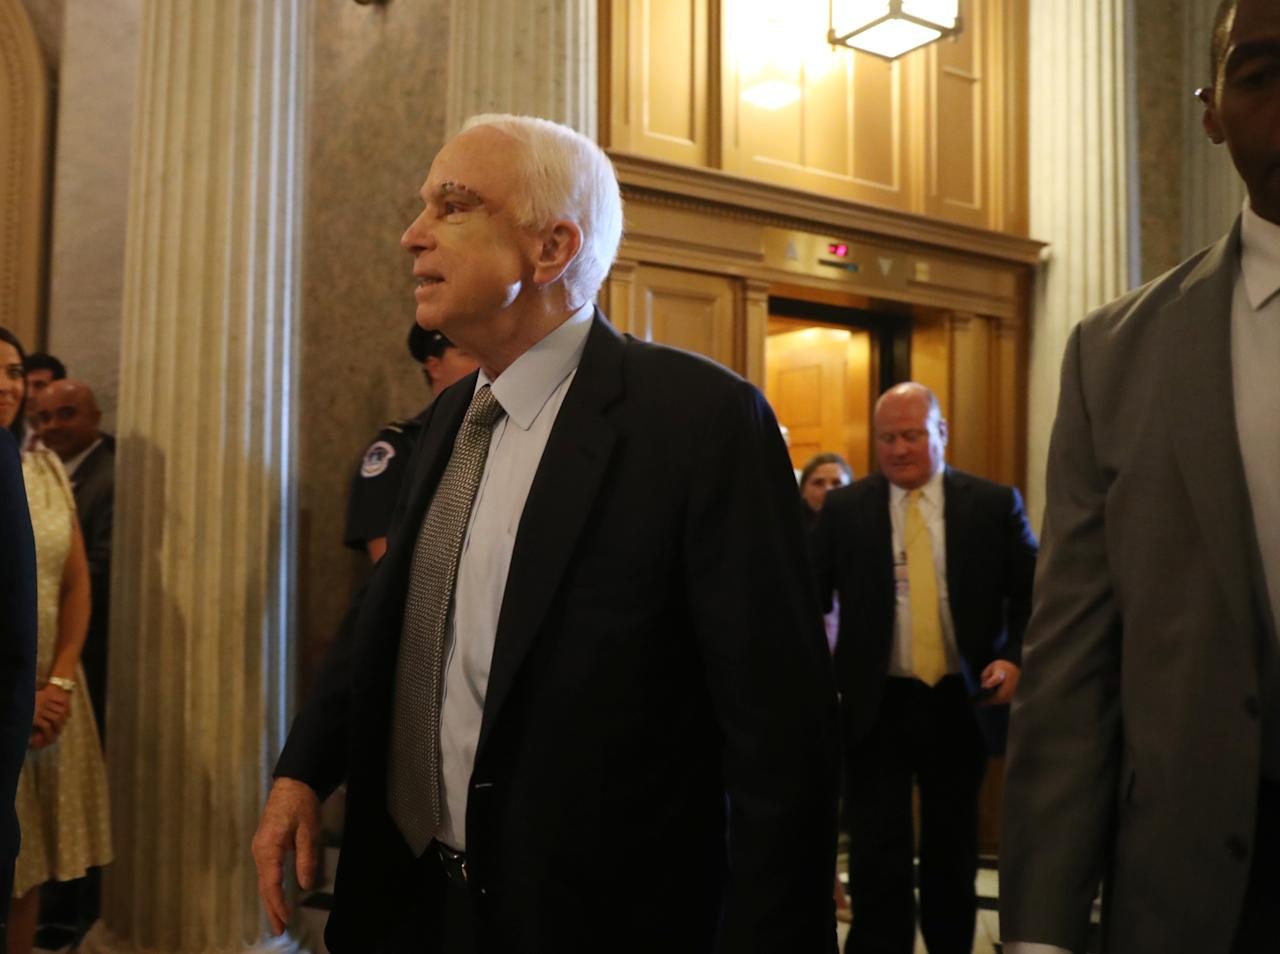 <p> Sen. John McCain, R-Ariz. arrives on Capitol Hill in Washington, Tuesday, July 25, 2017, as the Senate was to vote on moving head on health care with the goal of erasing much of Barack Obama's law. (AP Photo/Andrew Harnik) </p>